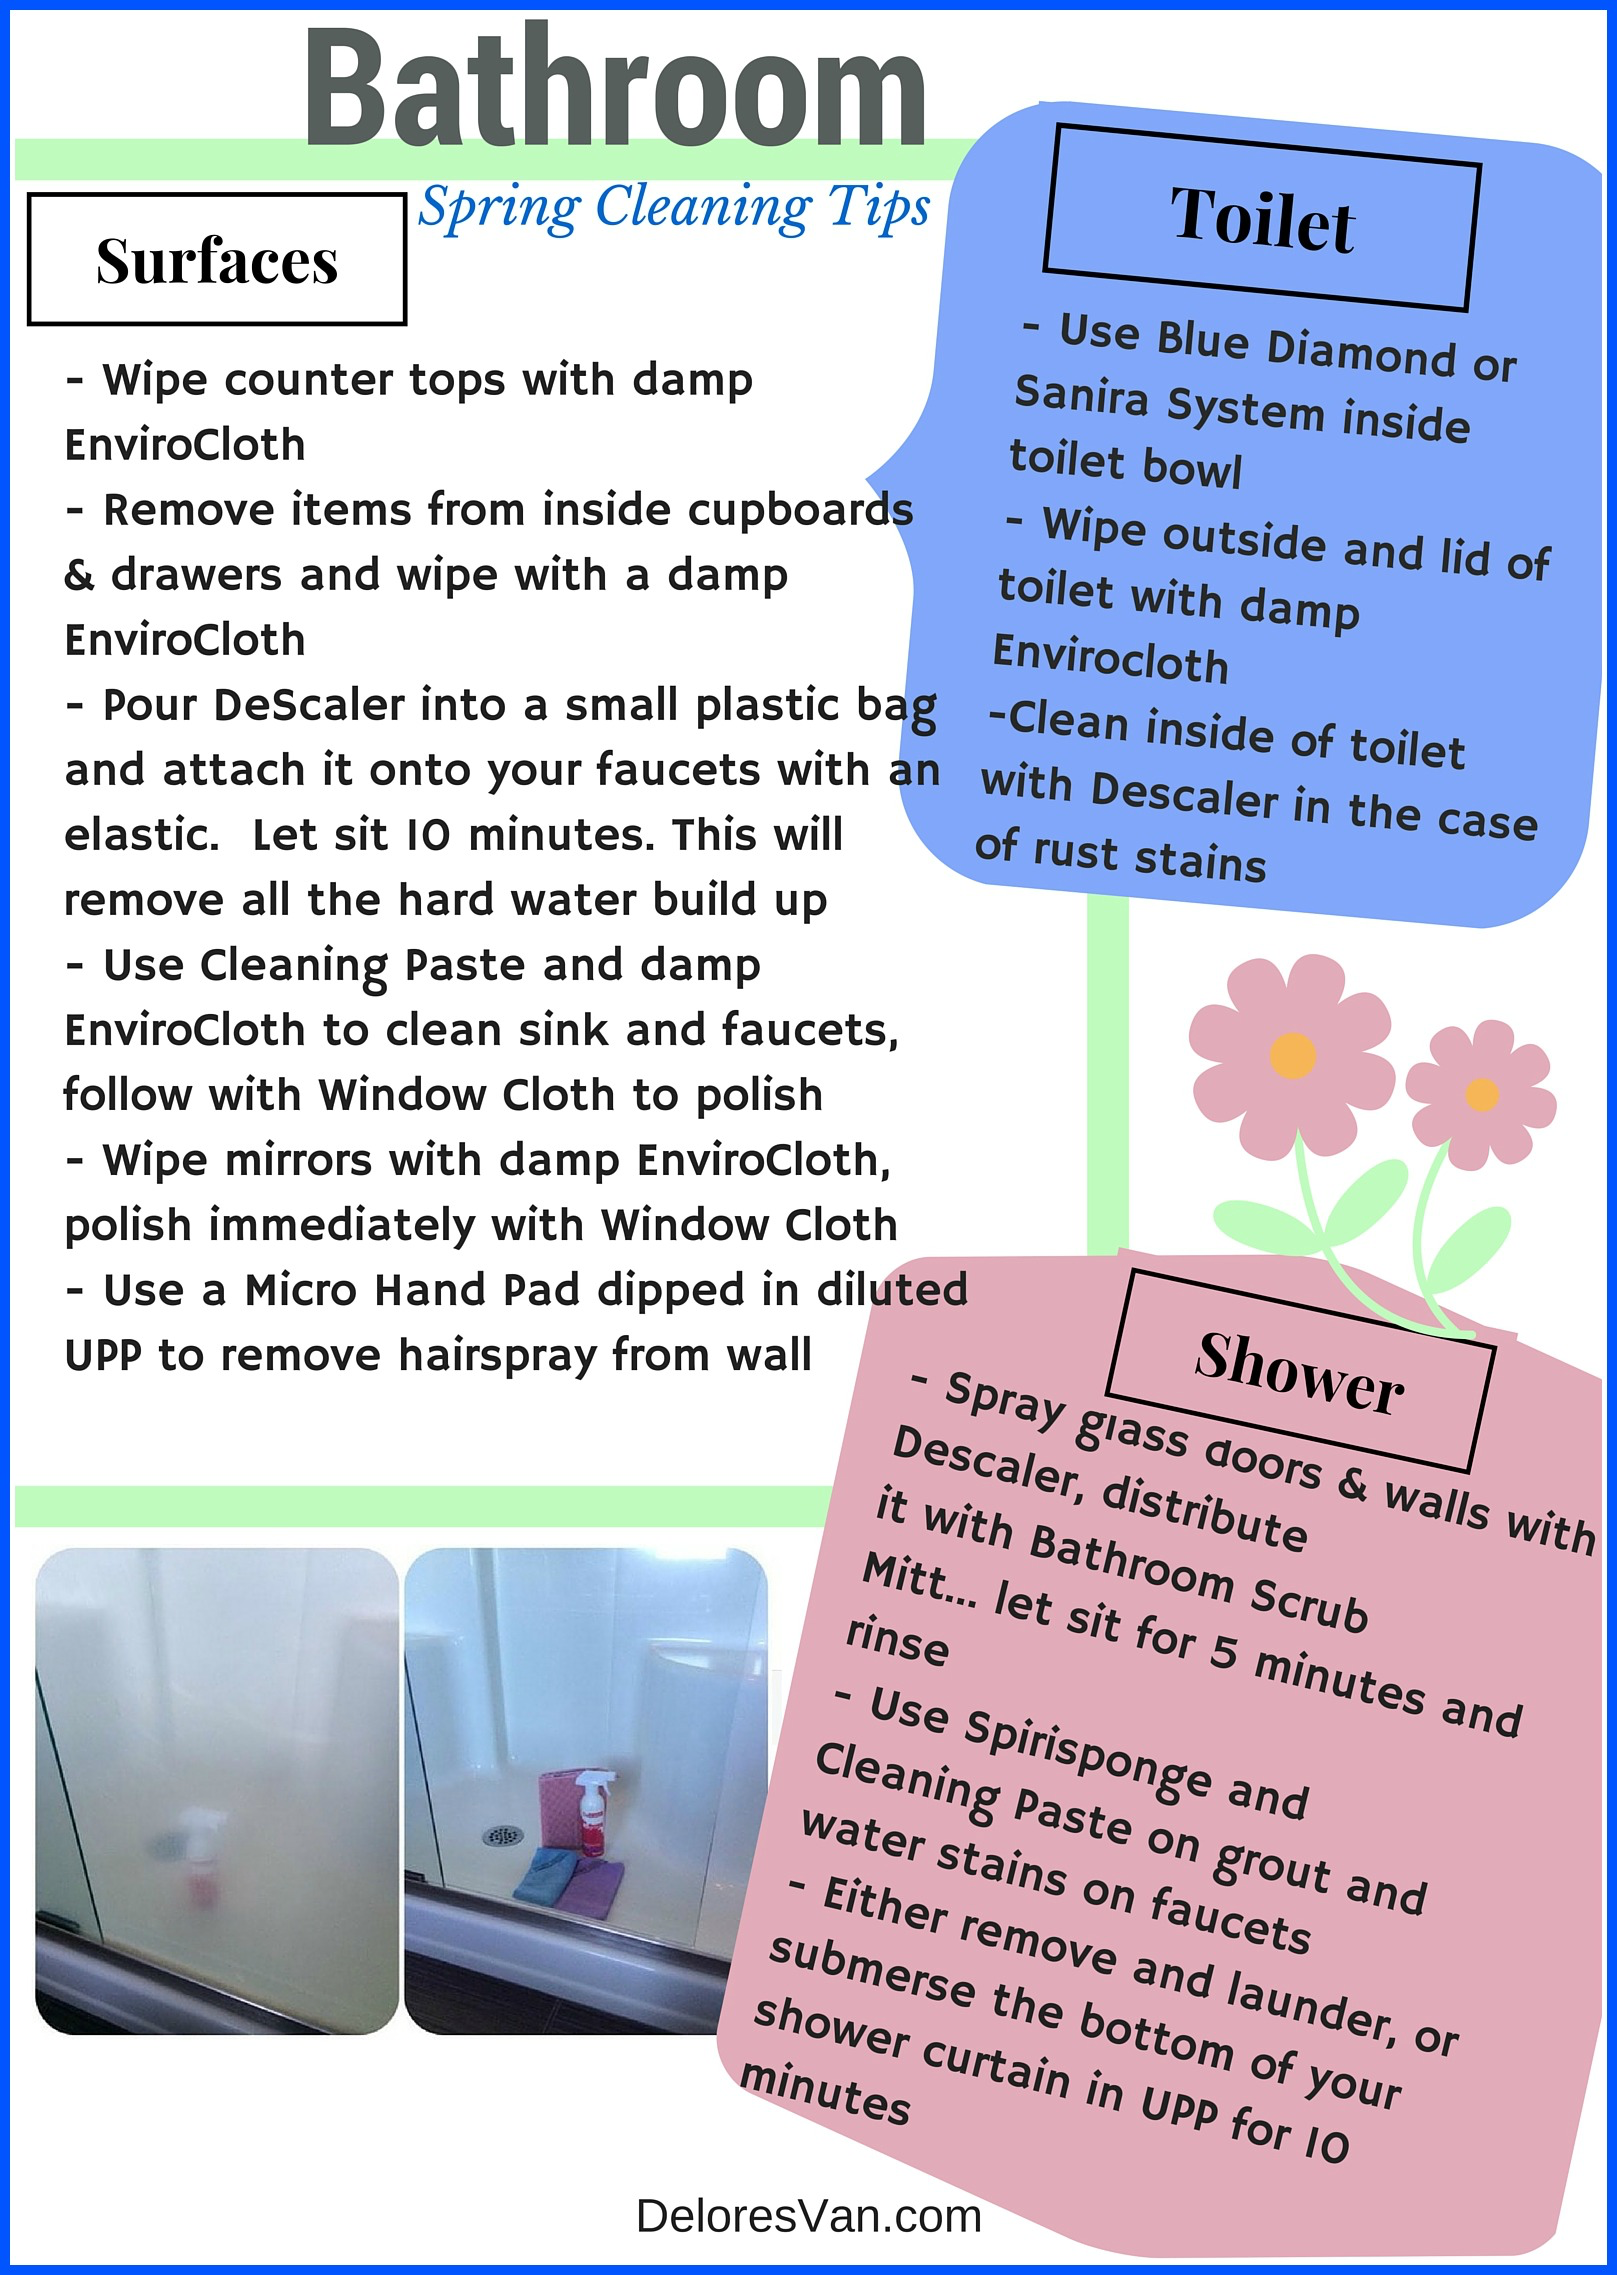 Norwex spring cleaning tips bathrooms rooms natural for How to use norwex bathroom scrub mitt